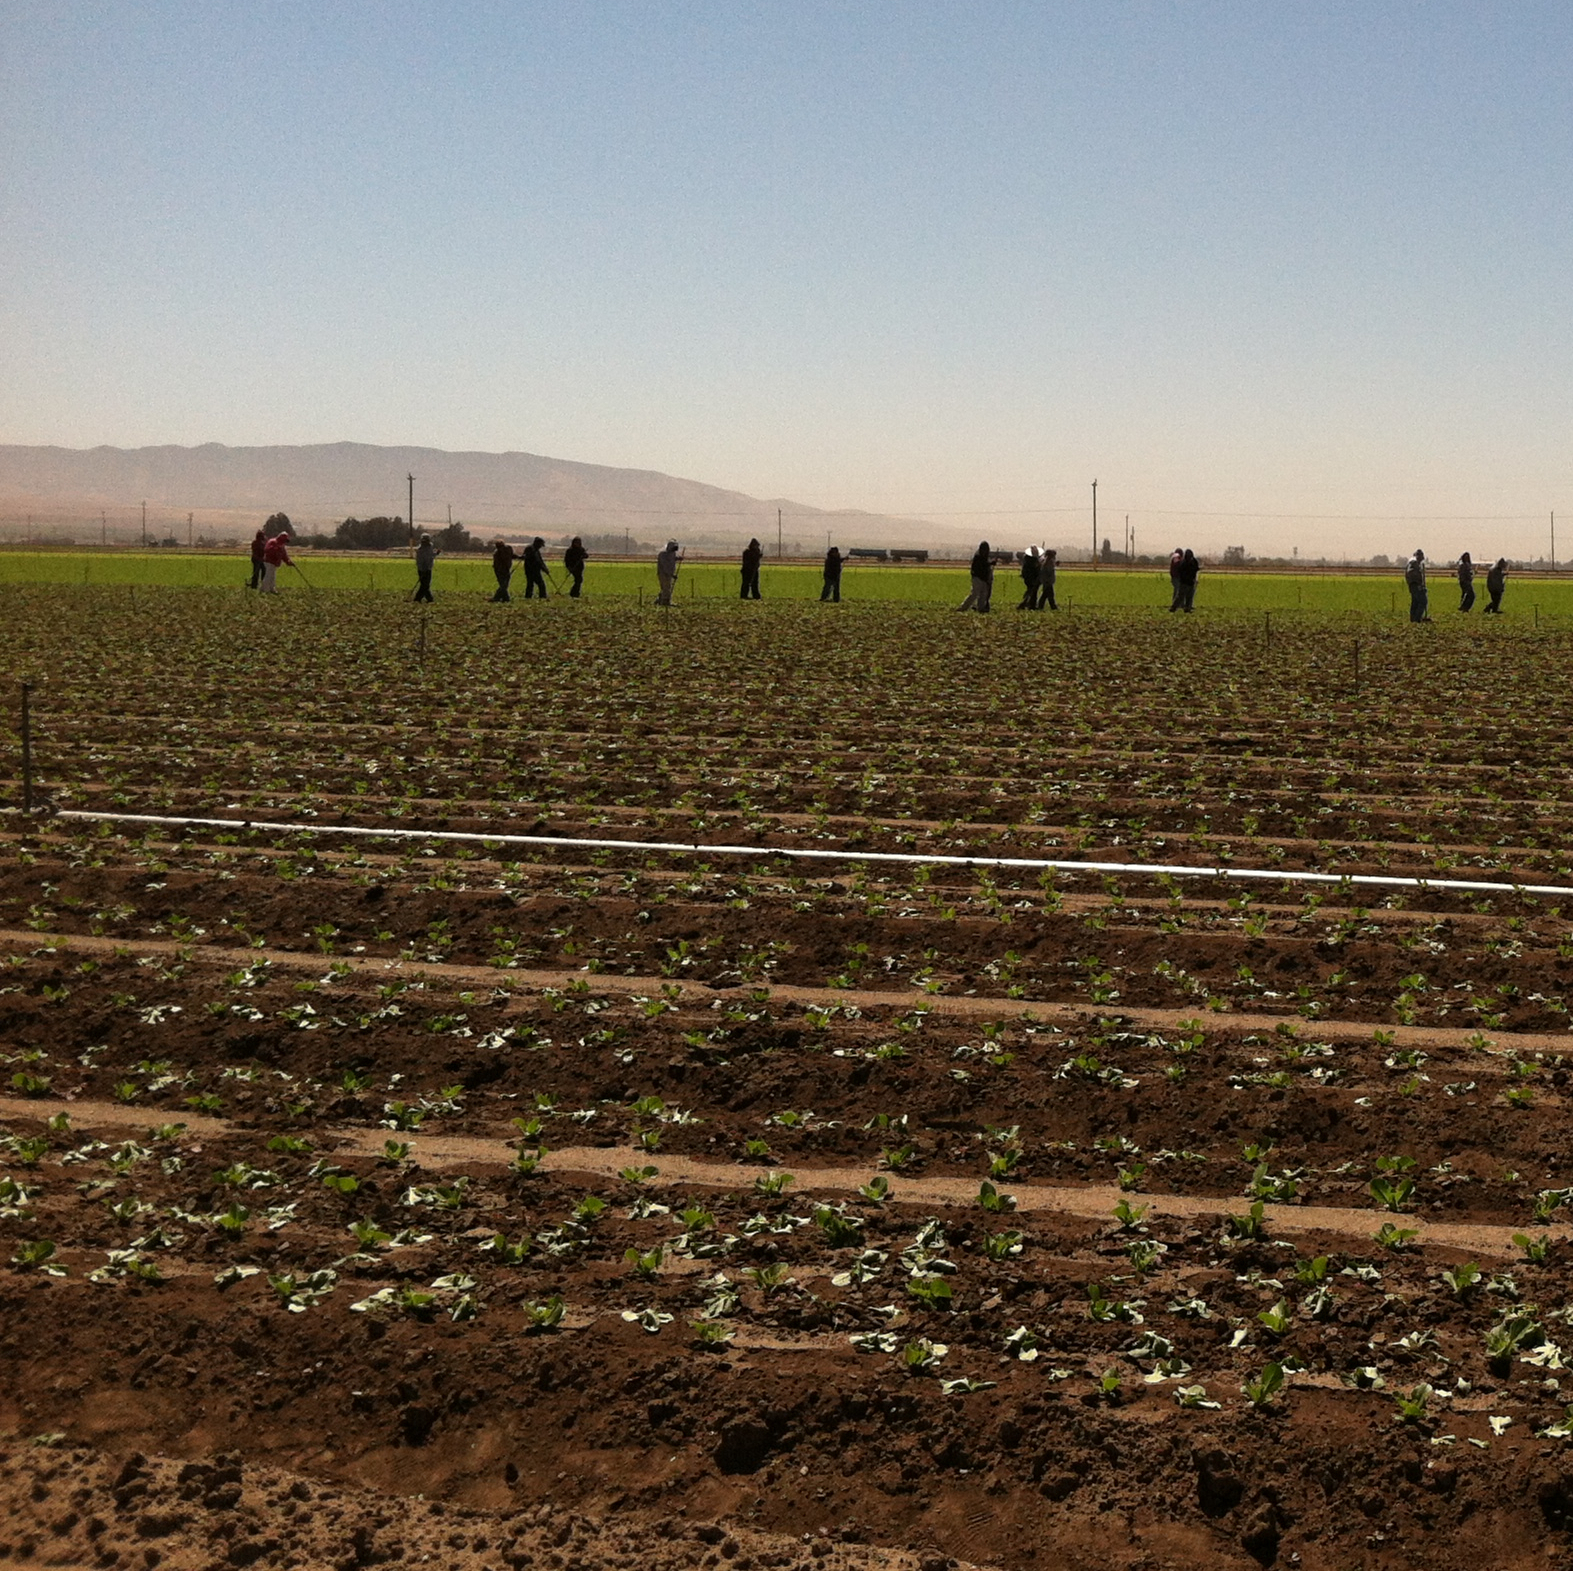 Thinning a field of lettuce without a robot requires a crew of 20 who do the same task with long-handled hoes.